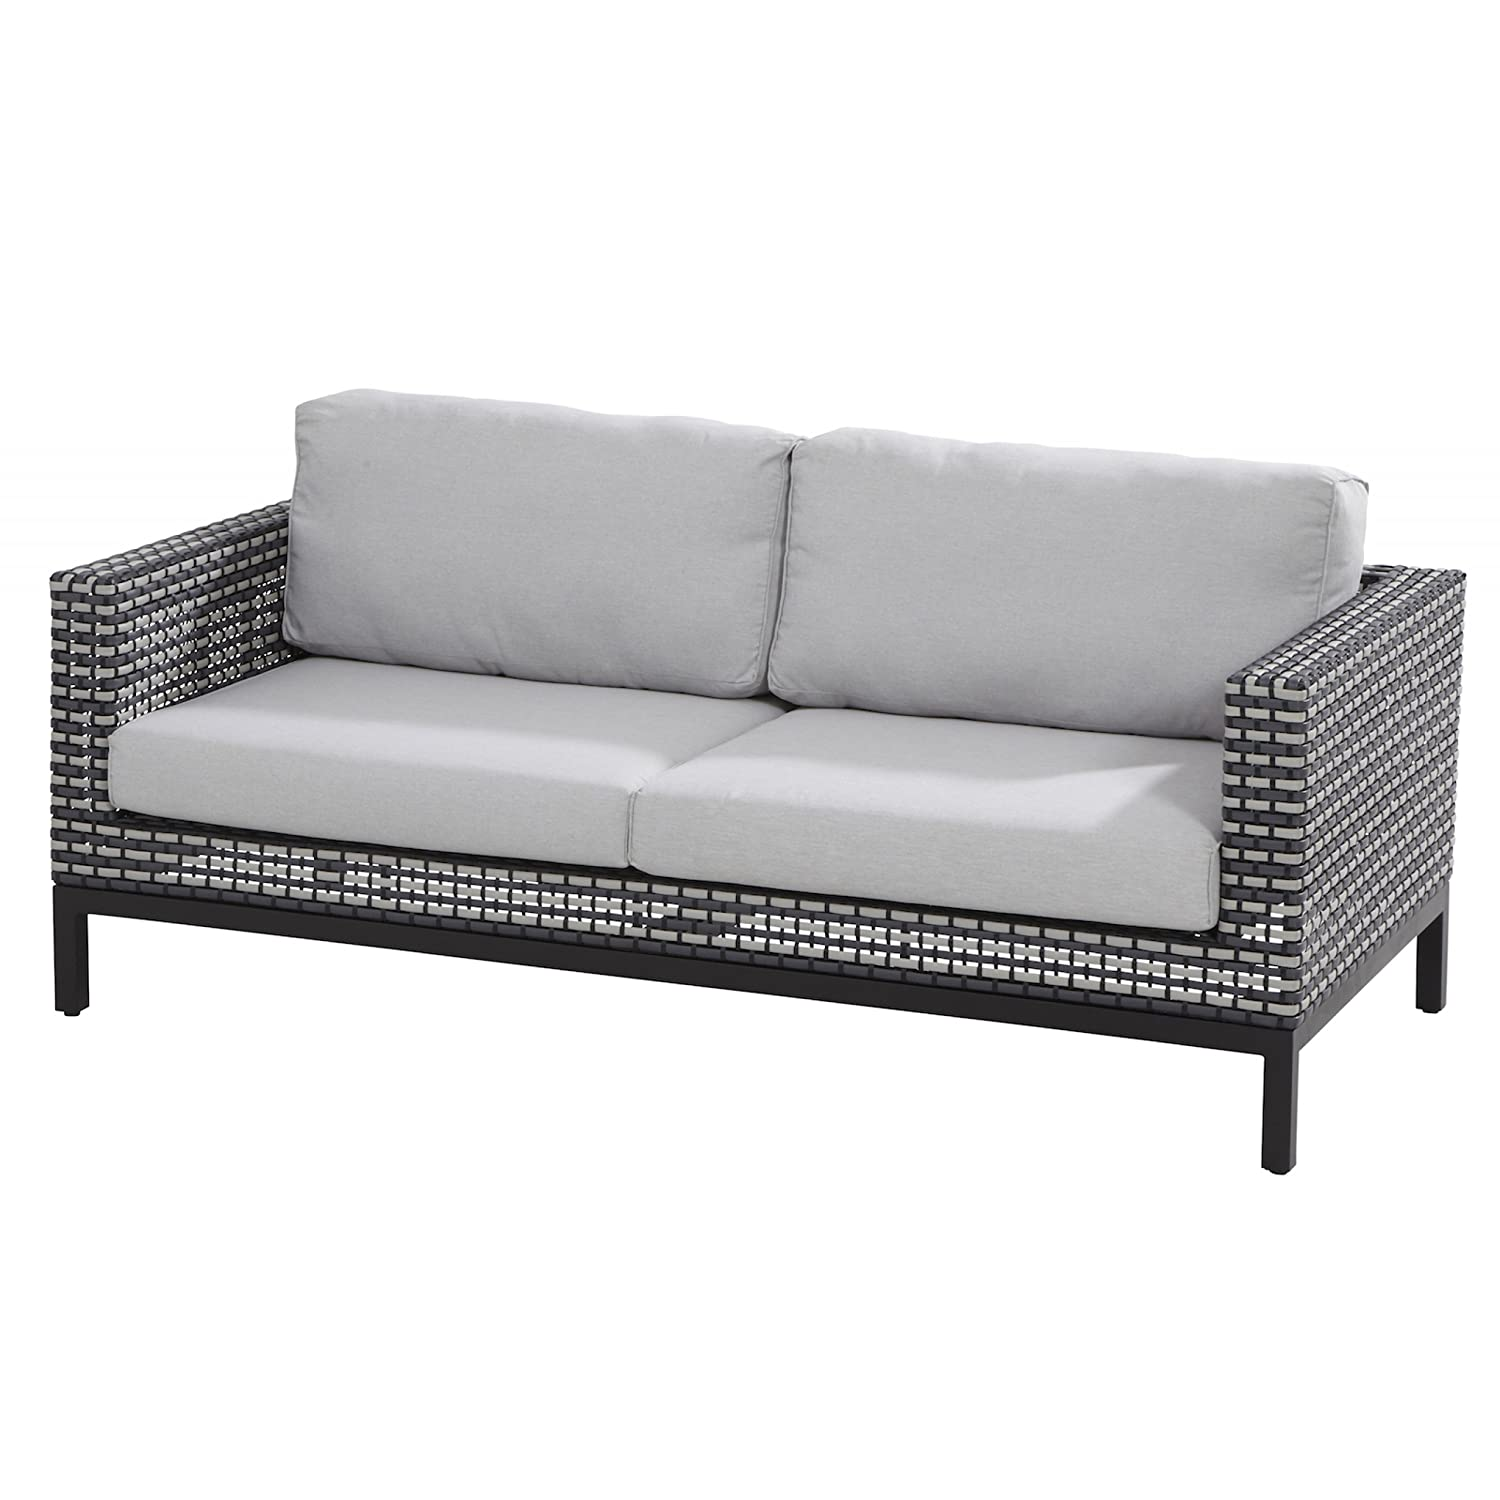 Lounge sofa outdoor günstig  4Seasons Outdoor Dias 2,5-Sitzer Loungesofa Black Pepper inkl. 4 ...